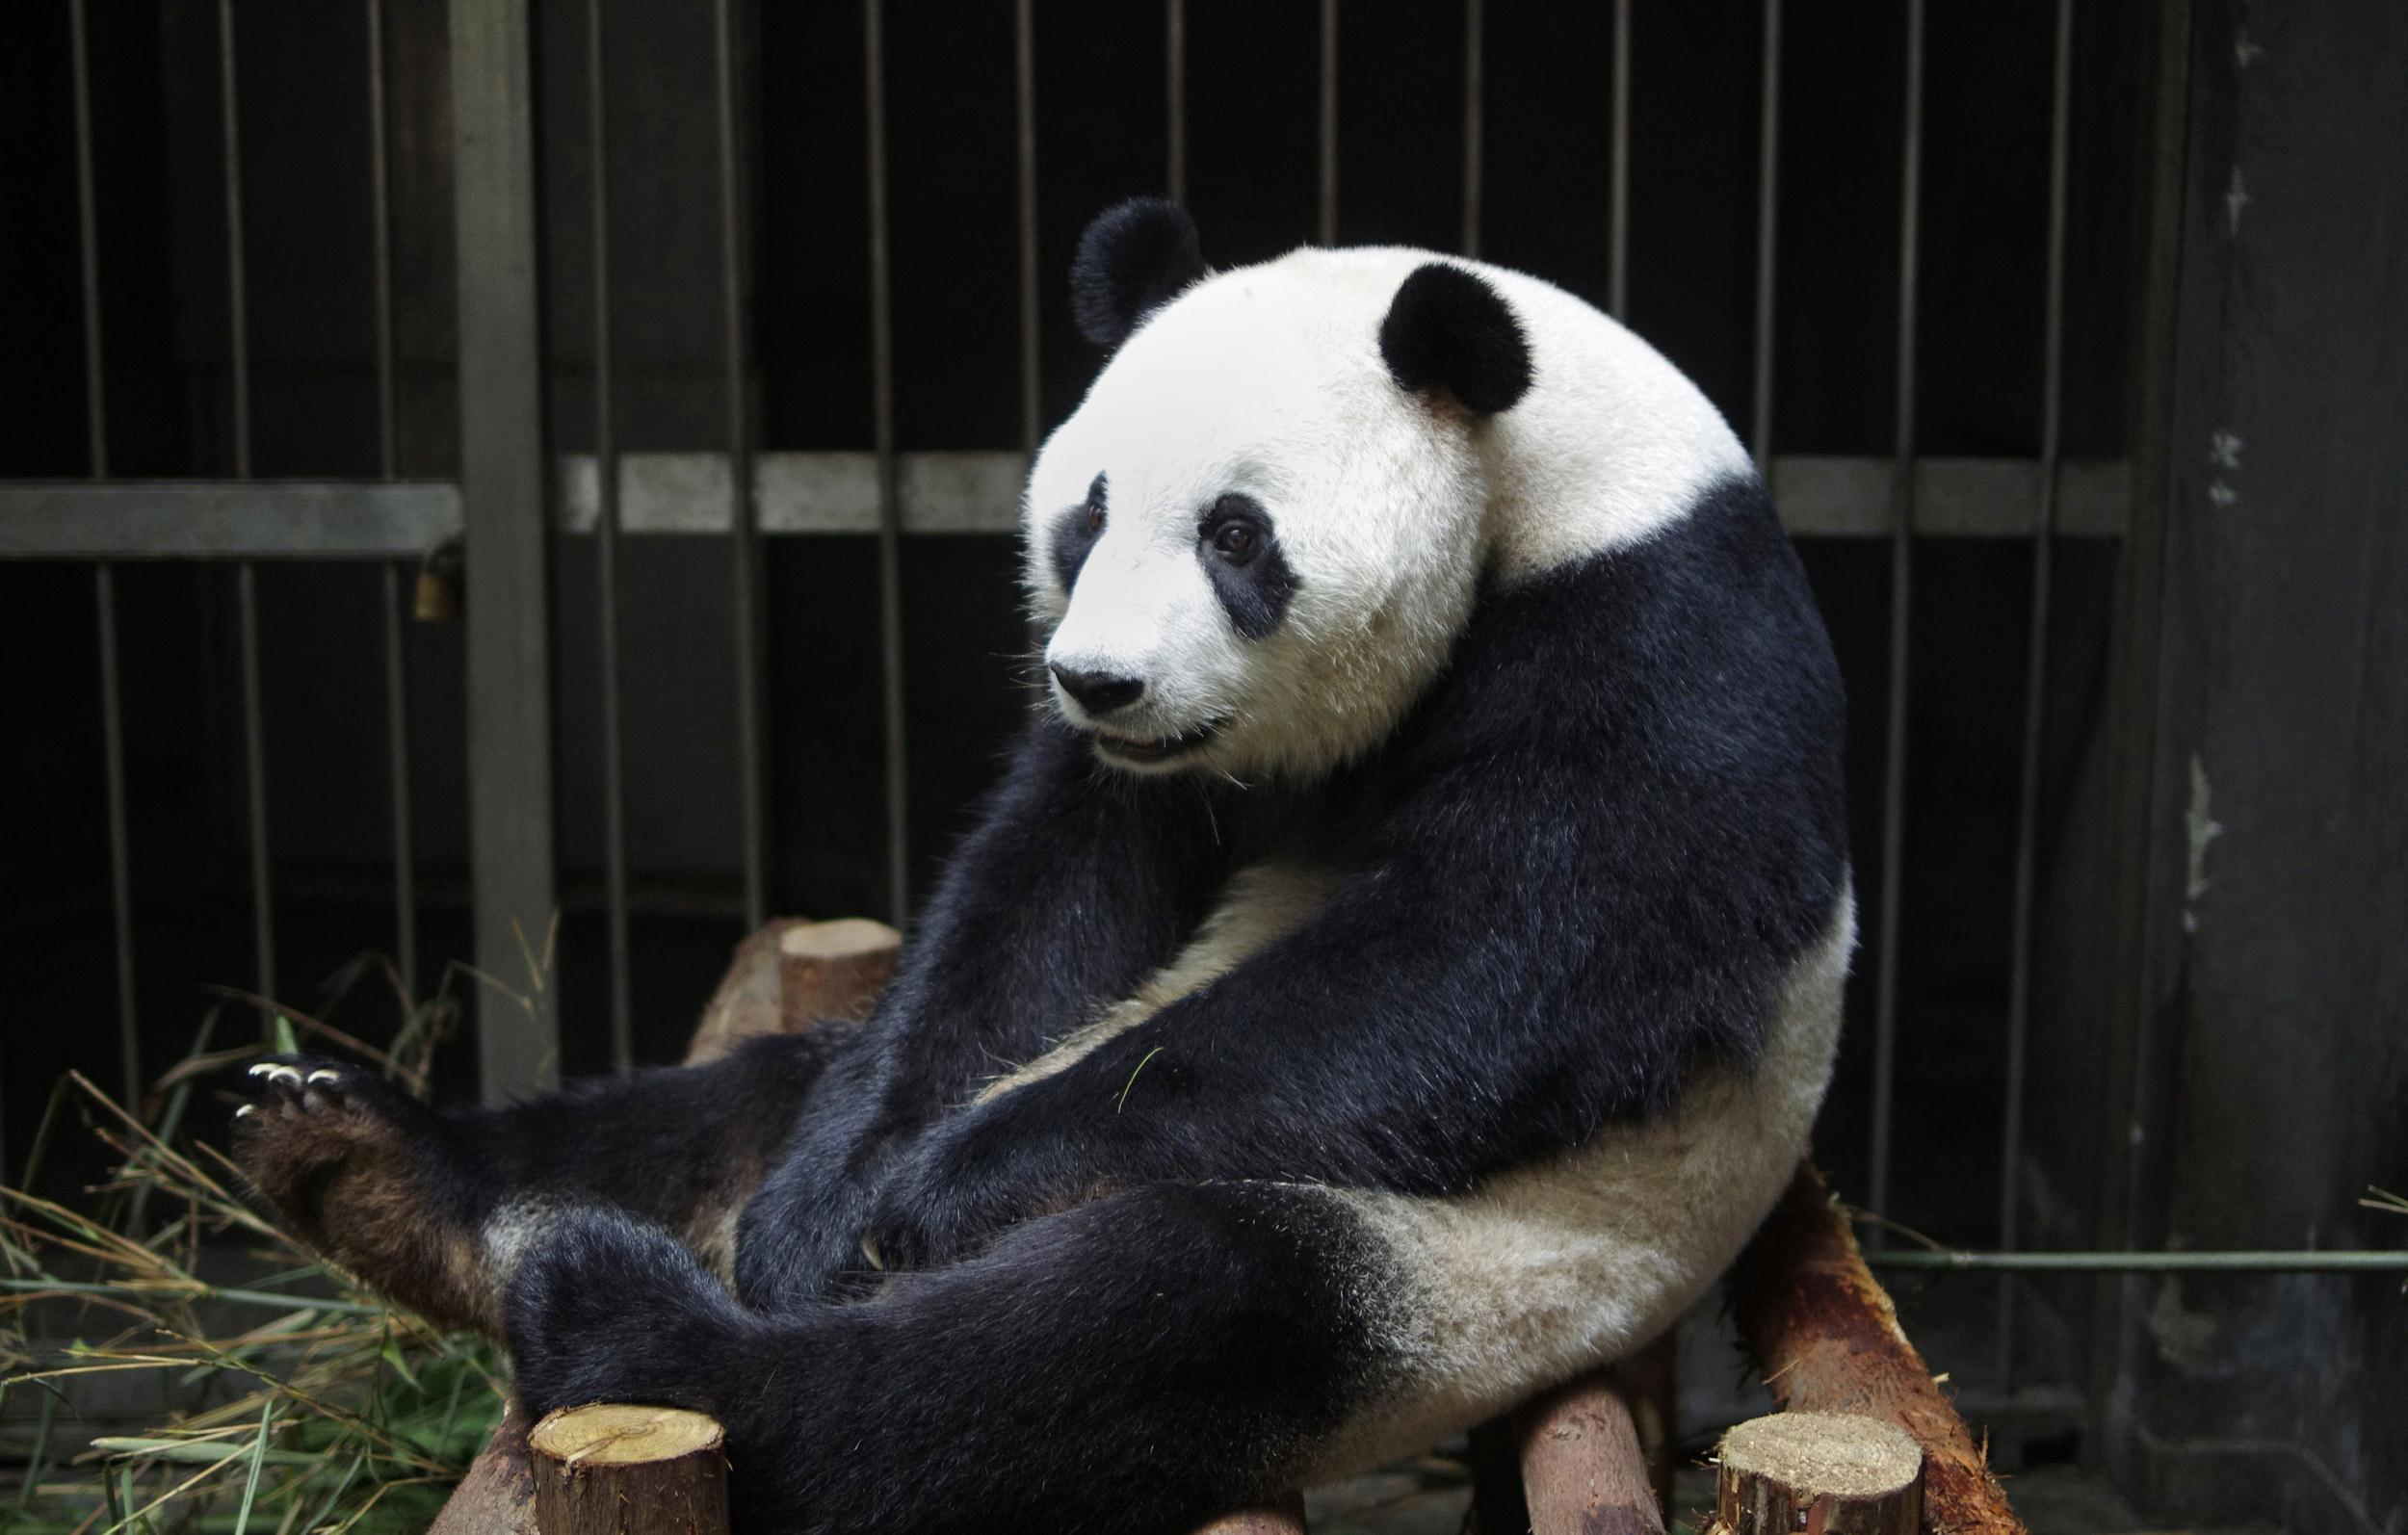 Image: CHINA-ANIMAL-PANDA-OFFBEAT